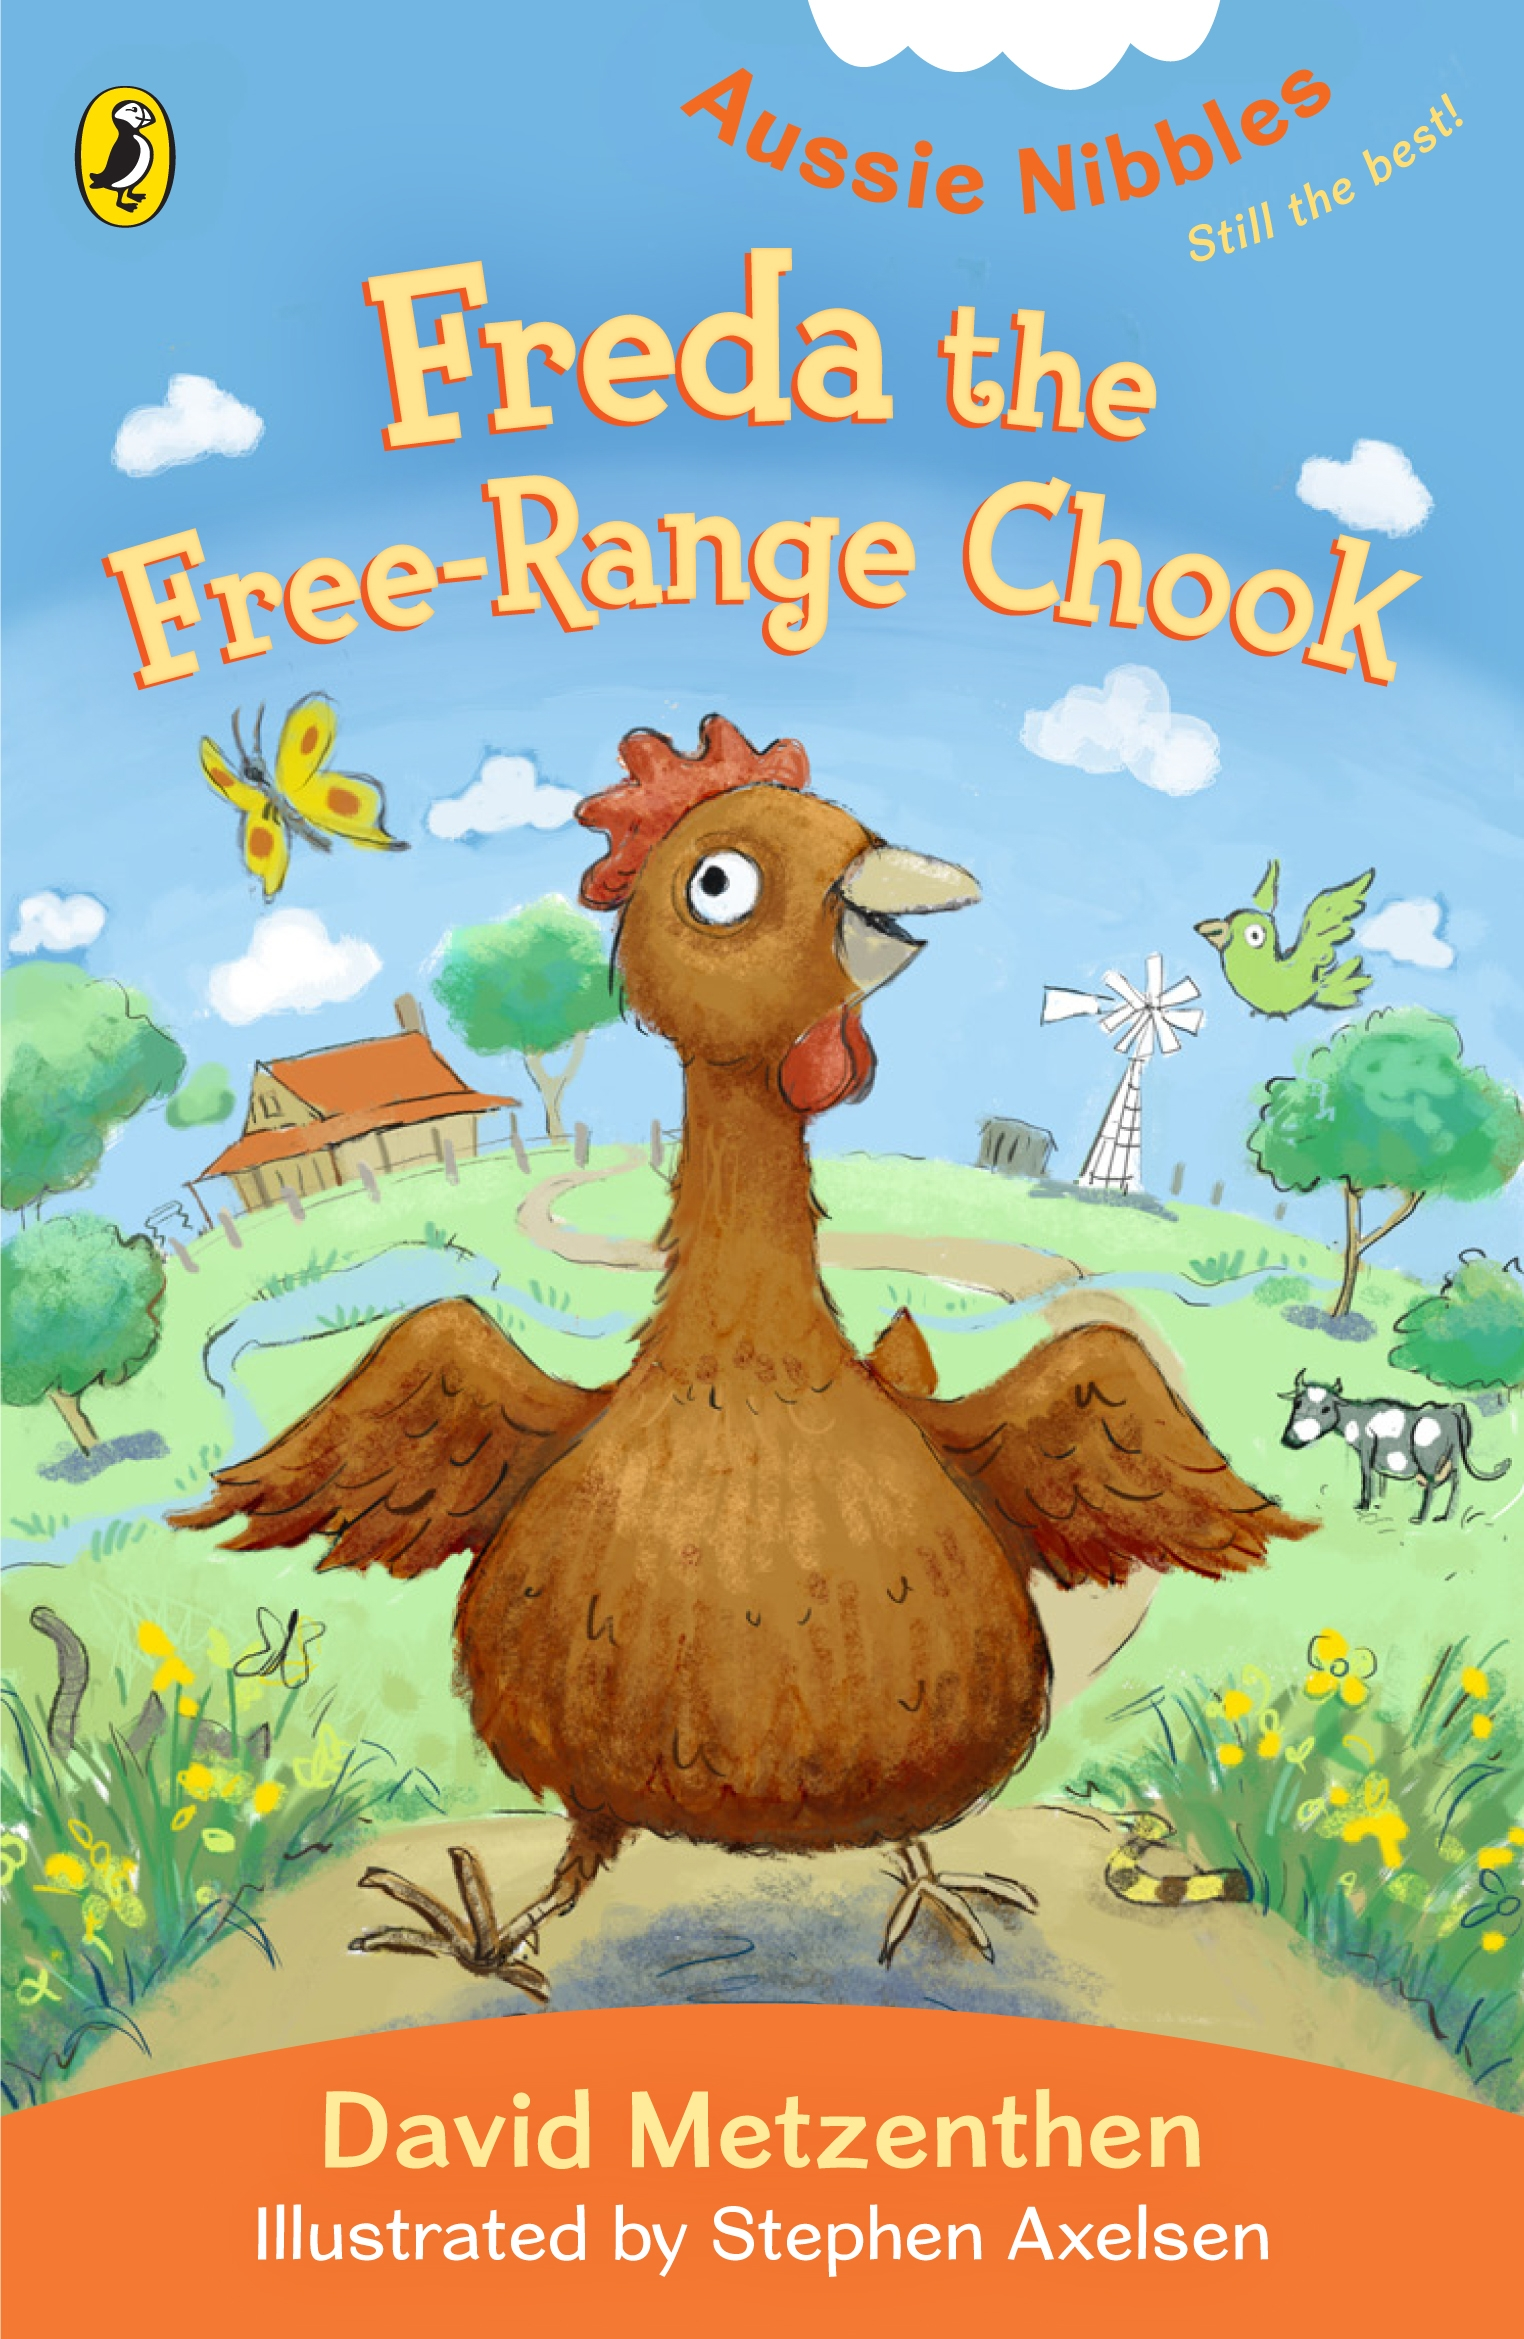 Book Cover:  Aussie Nibbles: Freda the Free-range Chook